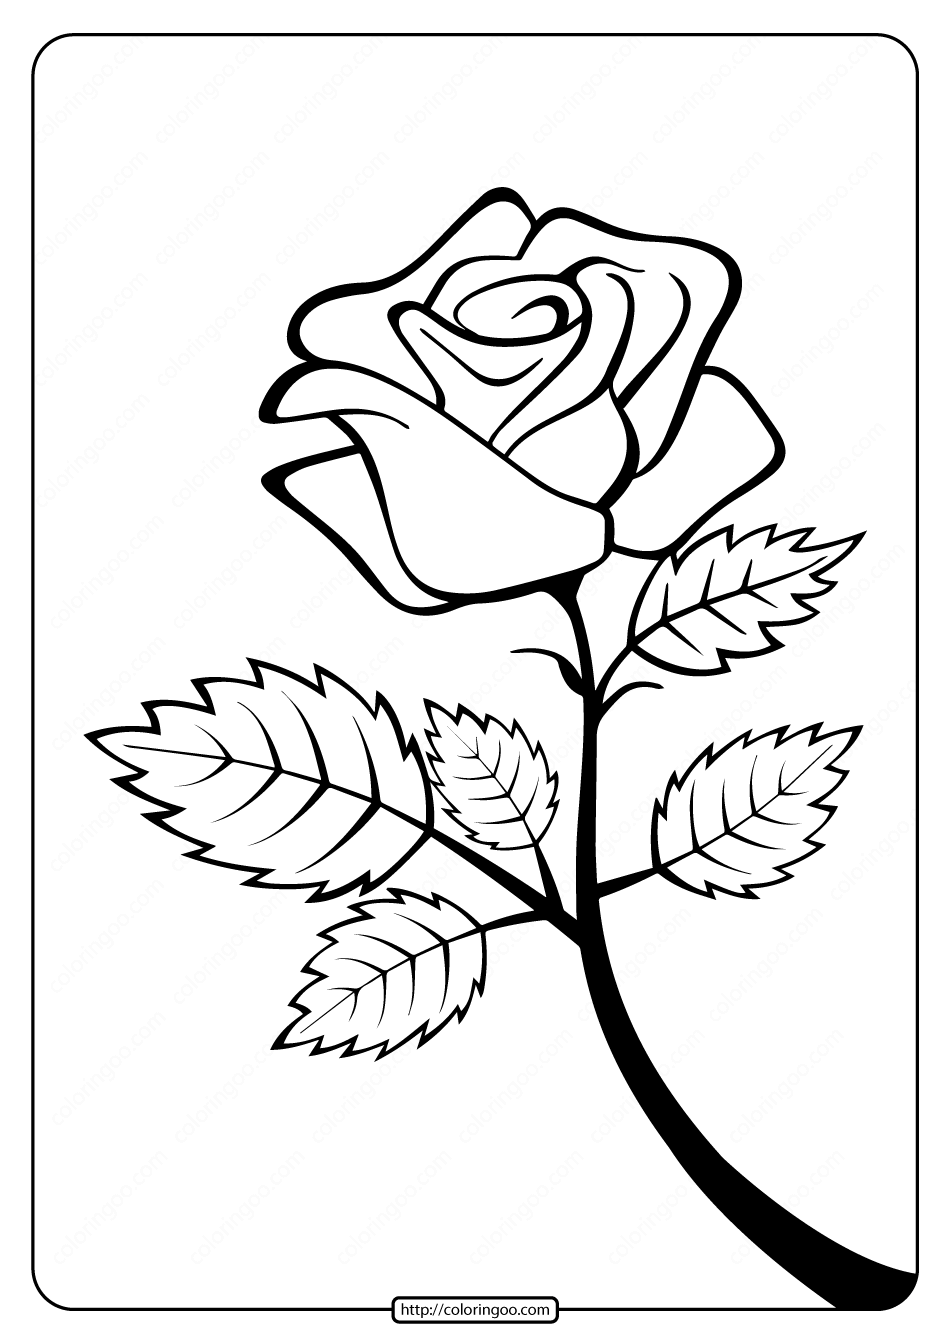 coloring picture rose free printable rose branch coloring page coloring rose picture